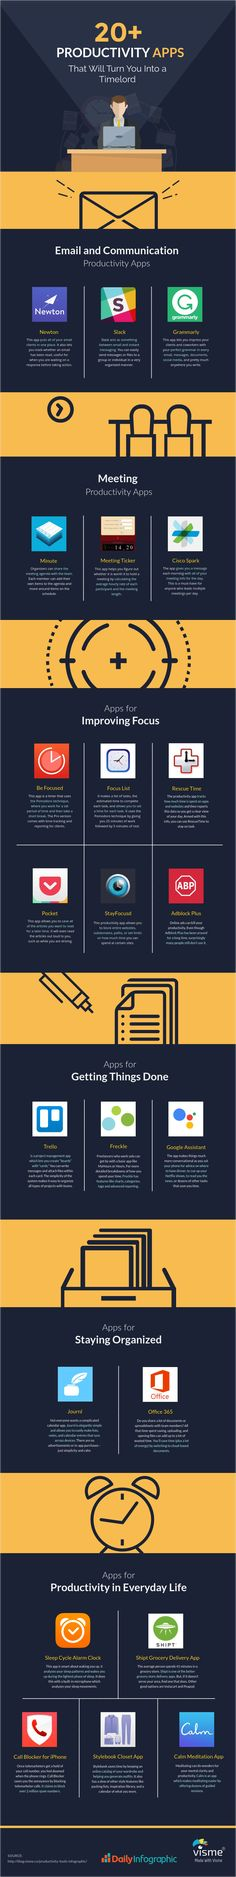 Life Hacks: The 20 Best Productivity Apps To Help You Do More In Less Time - #infographic